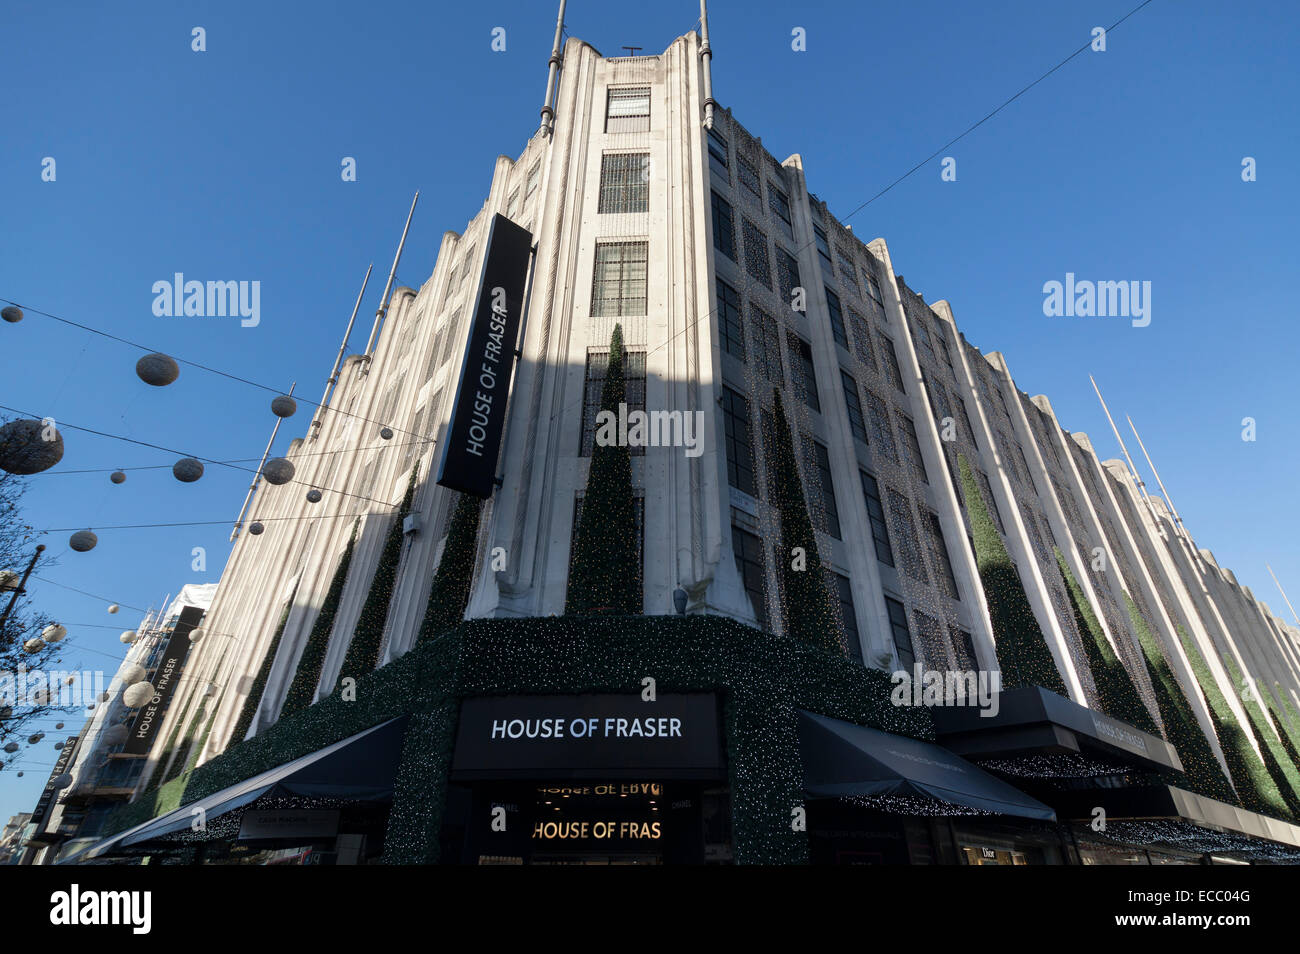 House of Fraser department store on Oxford Street - Stock Image